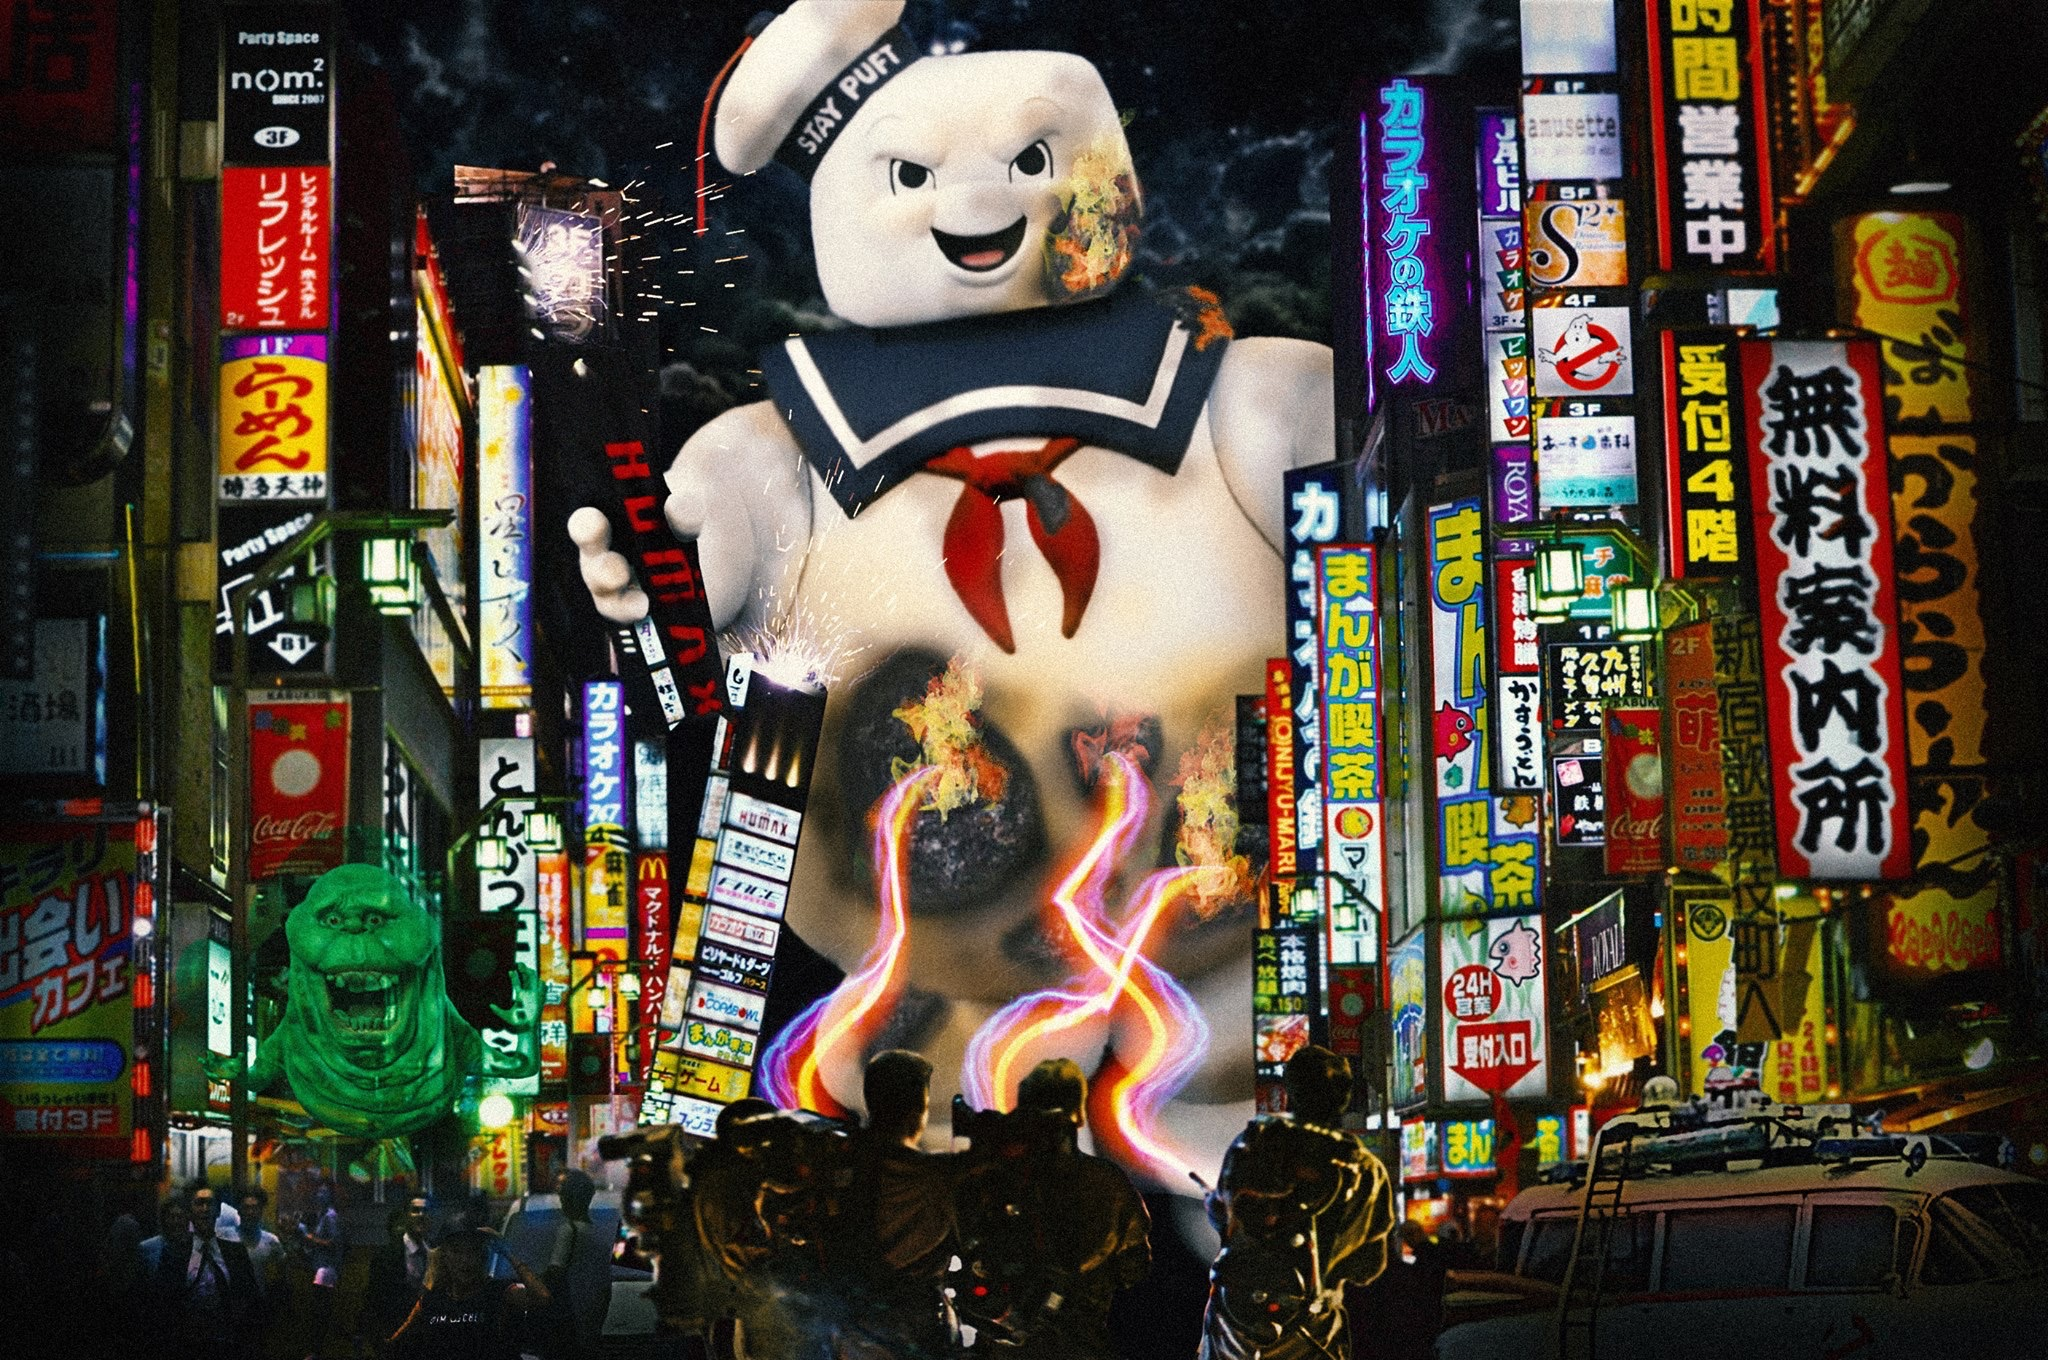 Hong Kong Ghostbusters Photo Manipulation